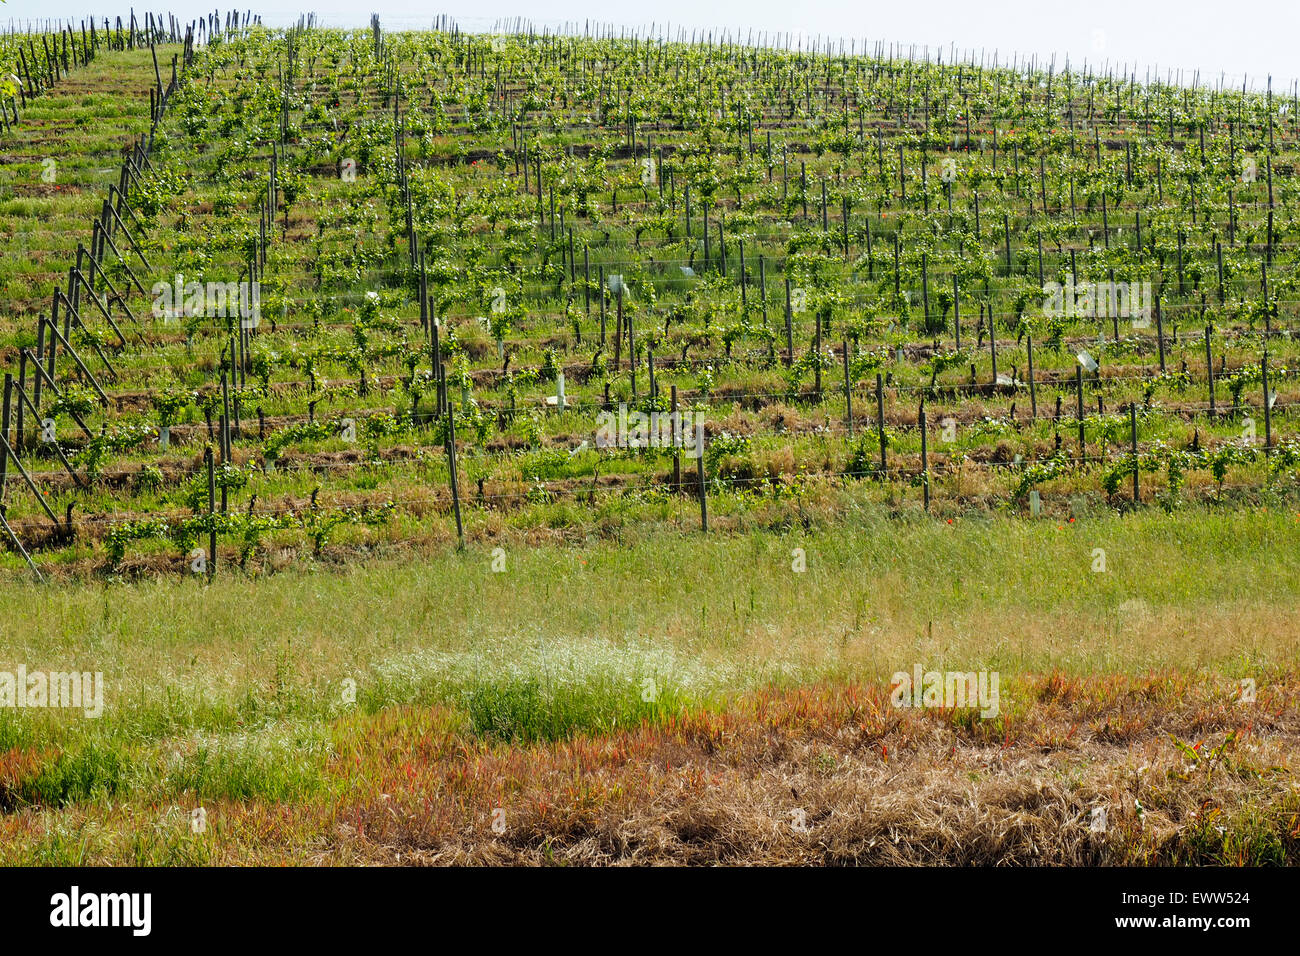 Vineyard on the side of a hill in Piedmont, Italy. - Stock Image